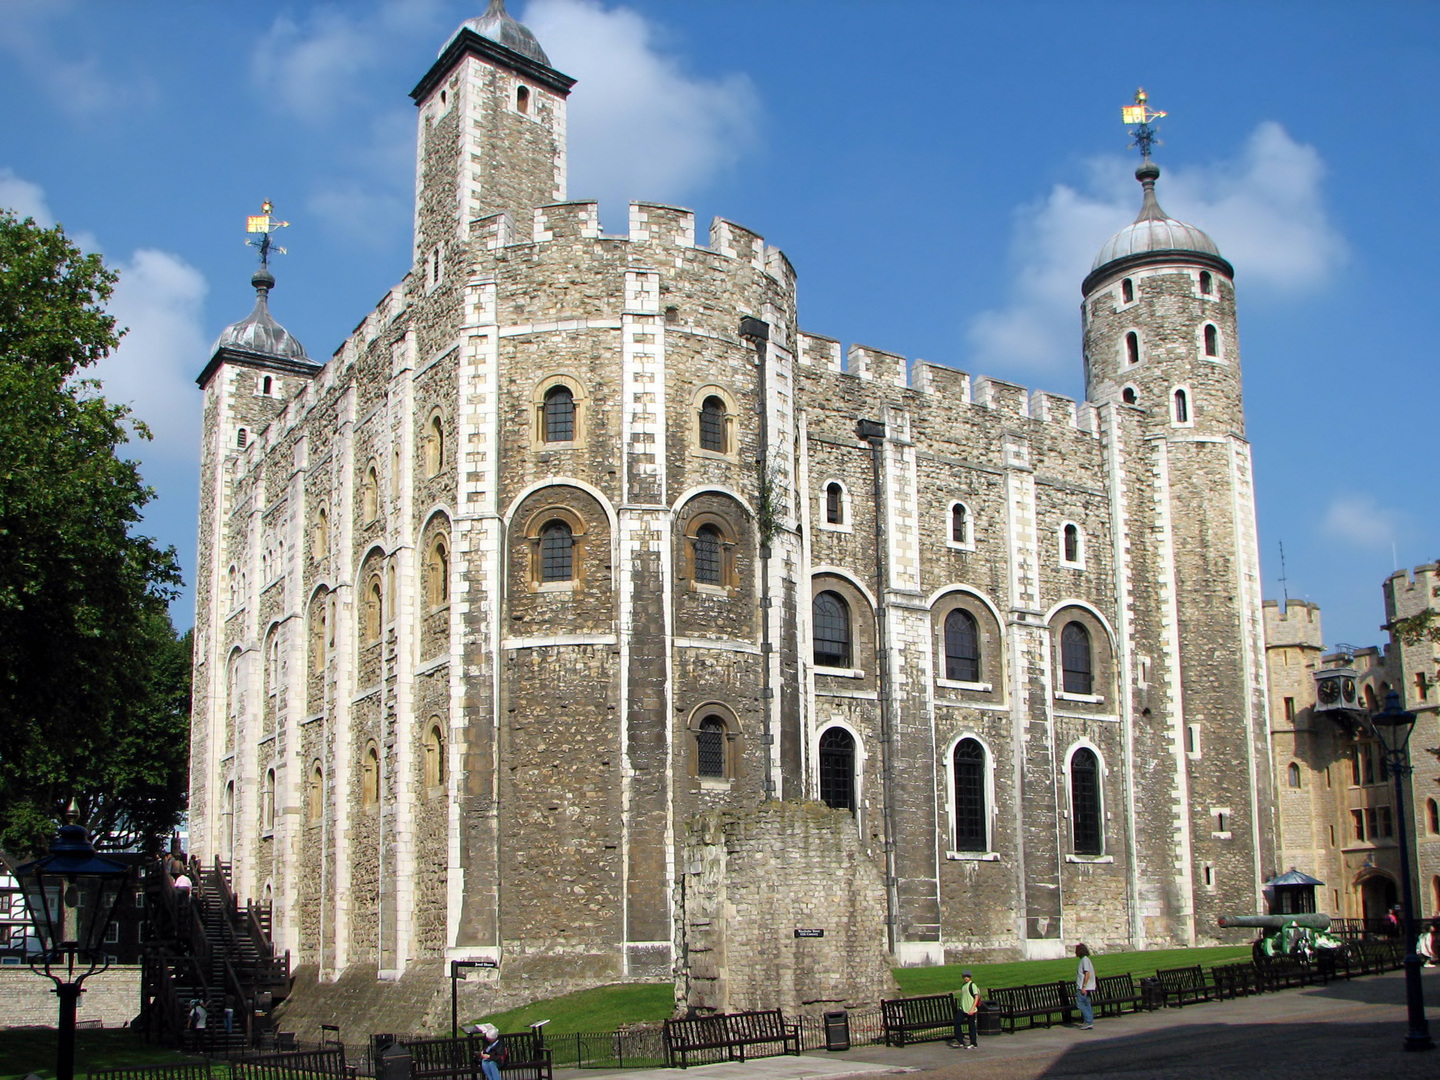 Tower_of_London_White_Tower.jpg